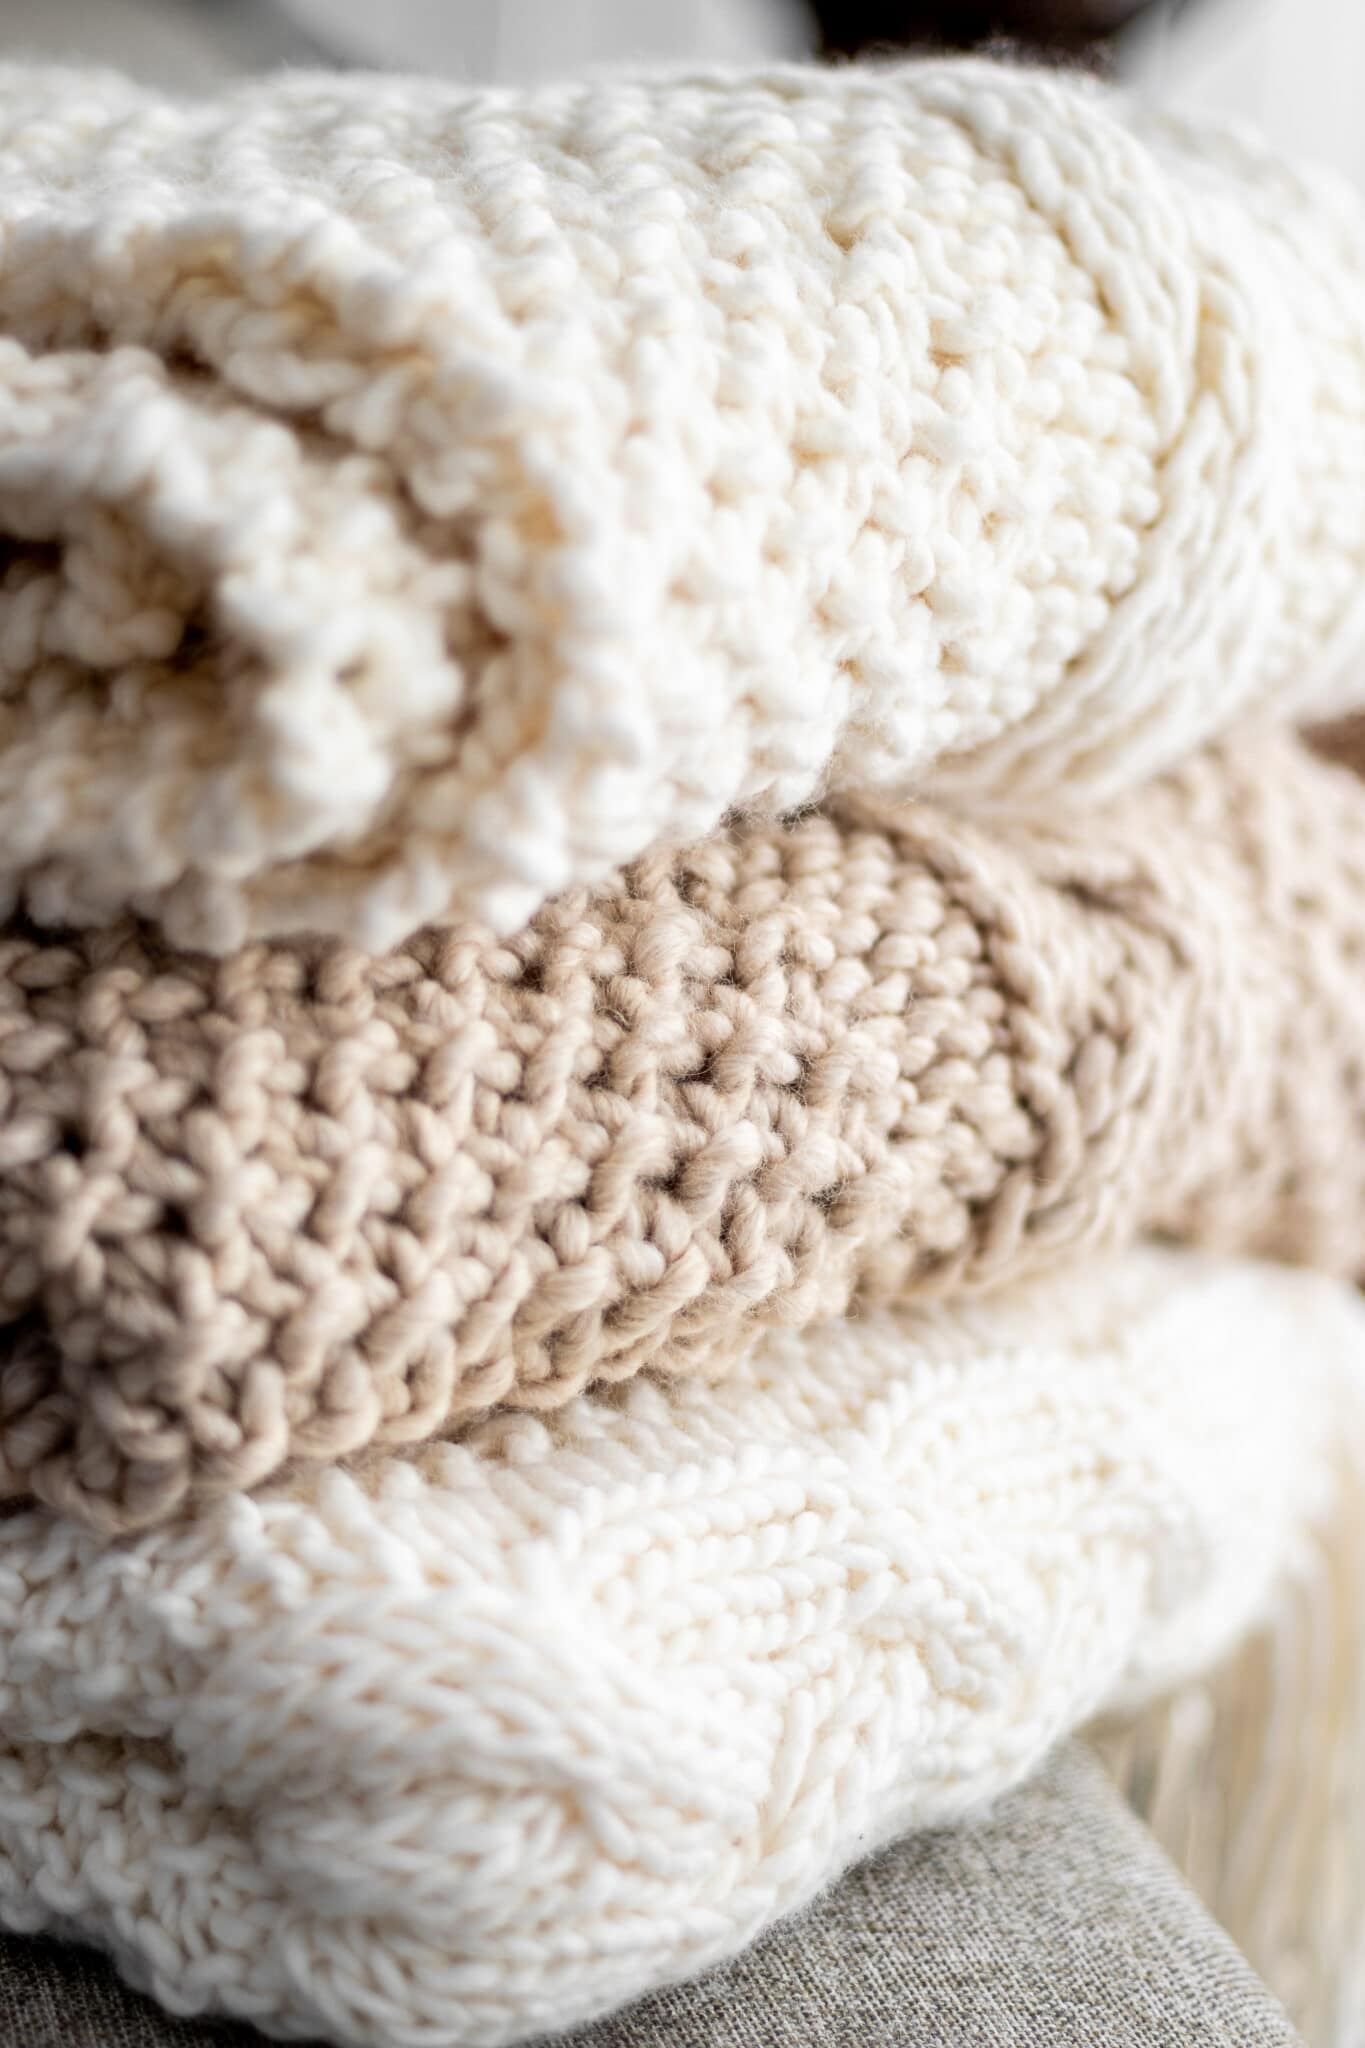 Beautiful hand knit and crocheted blankets in natural hues folded and stacked on top of one another.